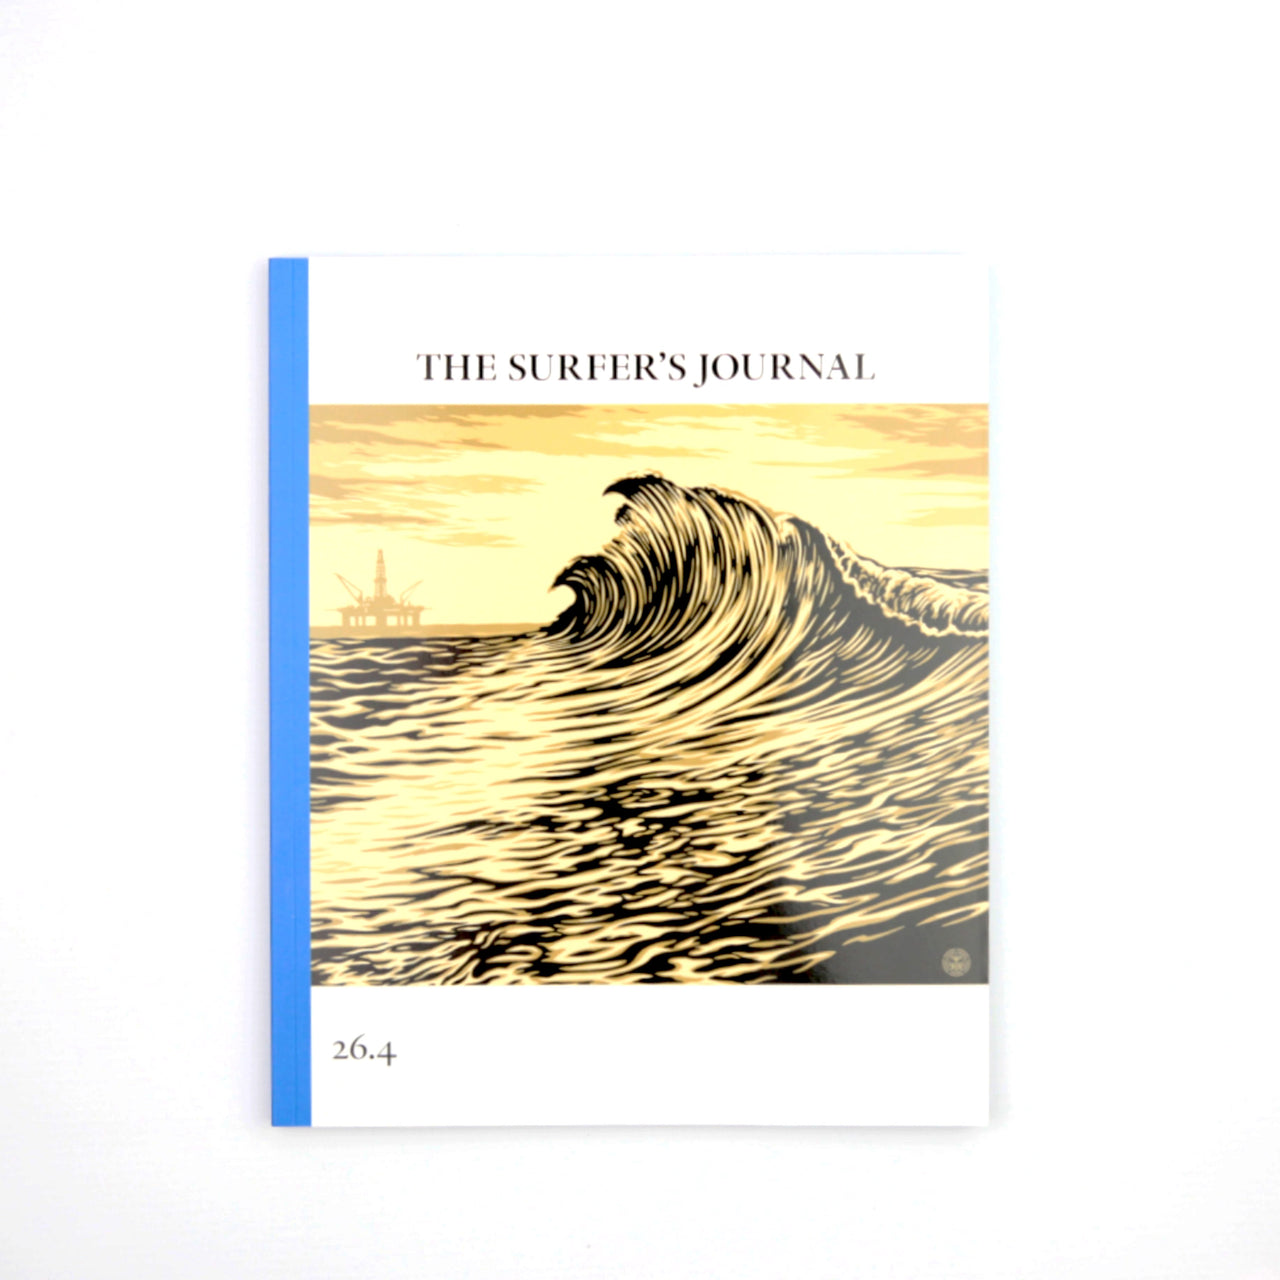 The Surfer's journal 26.4 - Just the Sea by SEA LOVERS